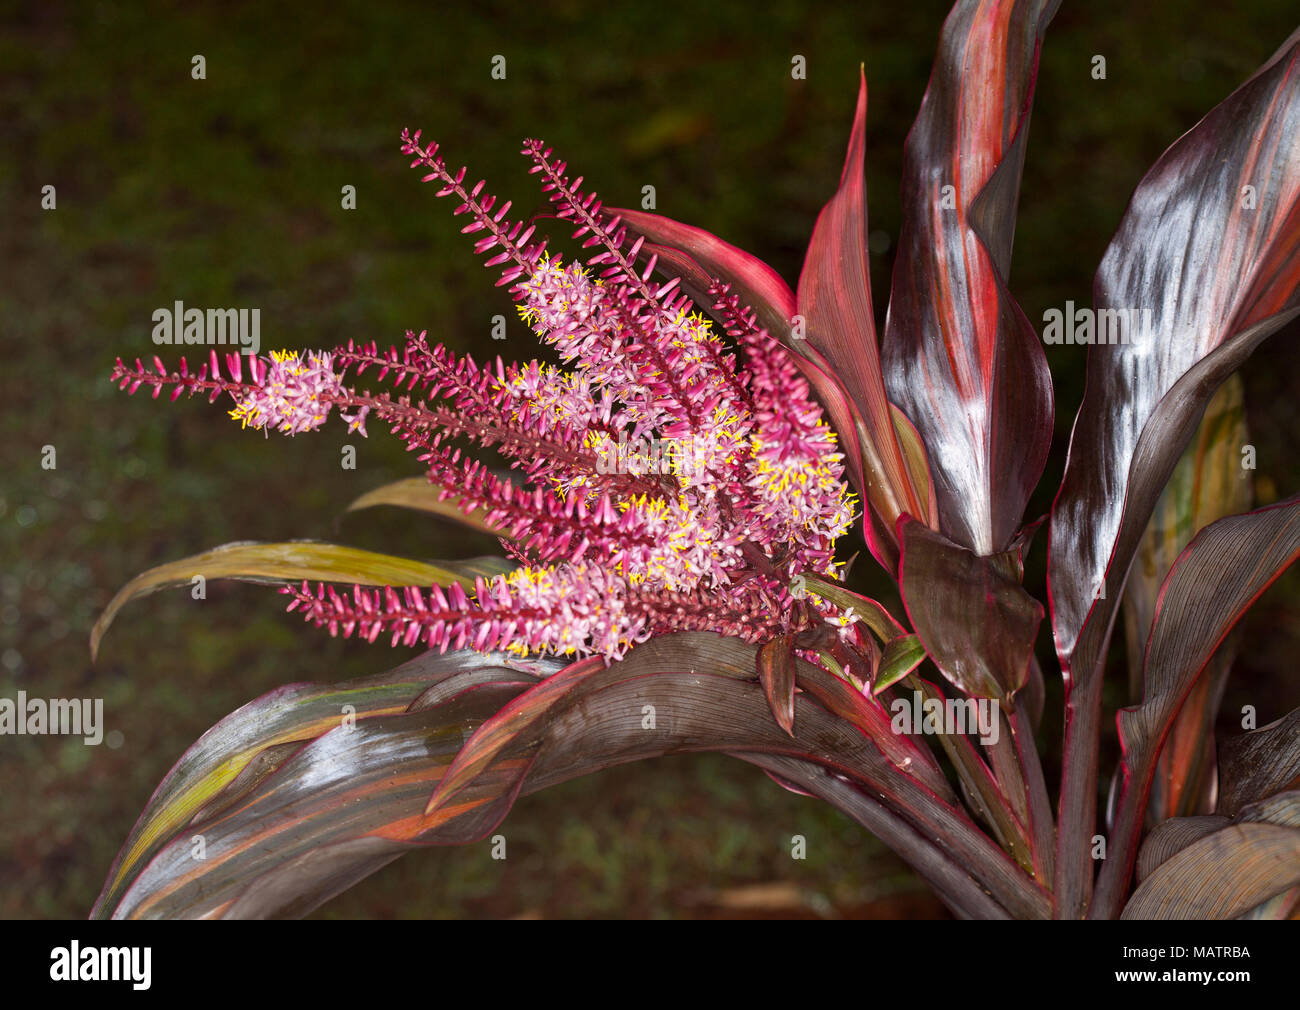 Red Cordyline Flower Spike Indoor Plants,gardening,australia,australian,australian